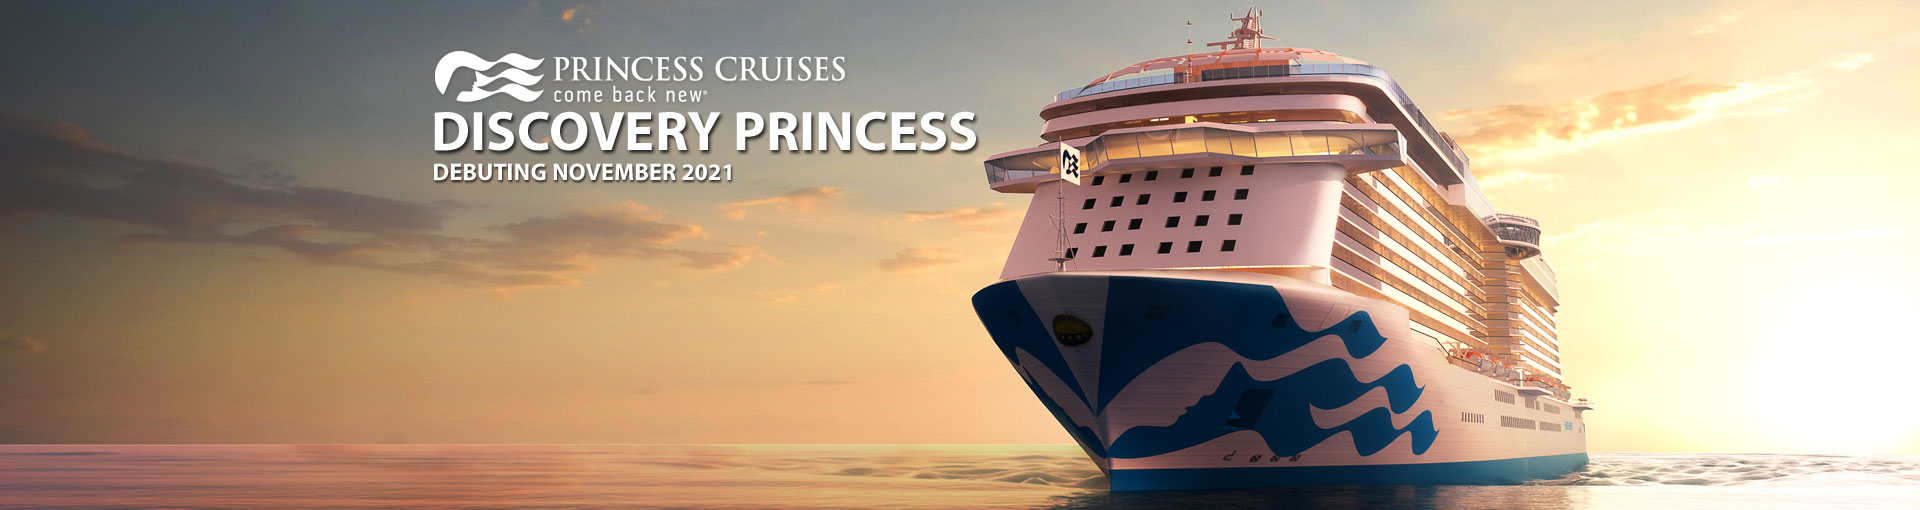 Princess Cruises Discovery Princess Cruise Ship